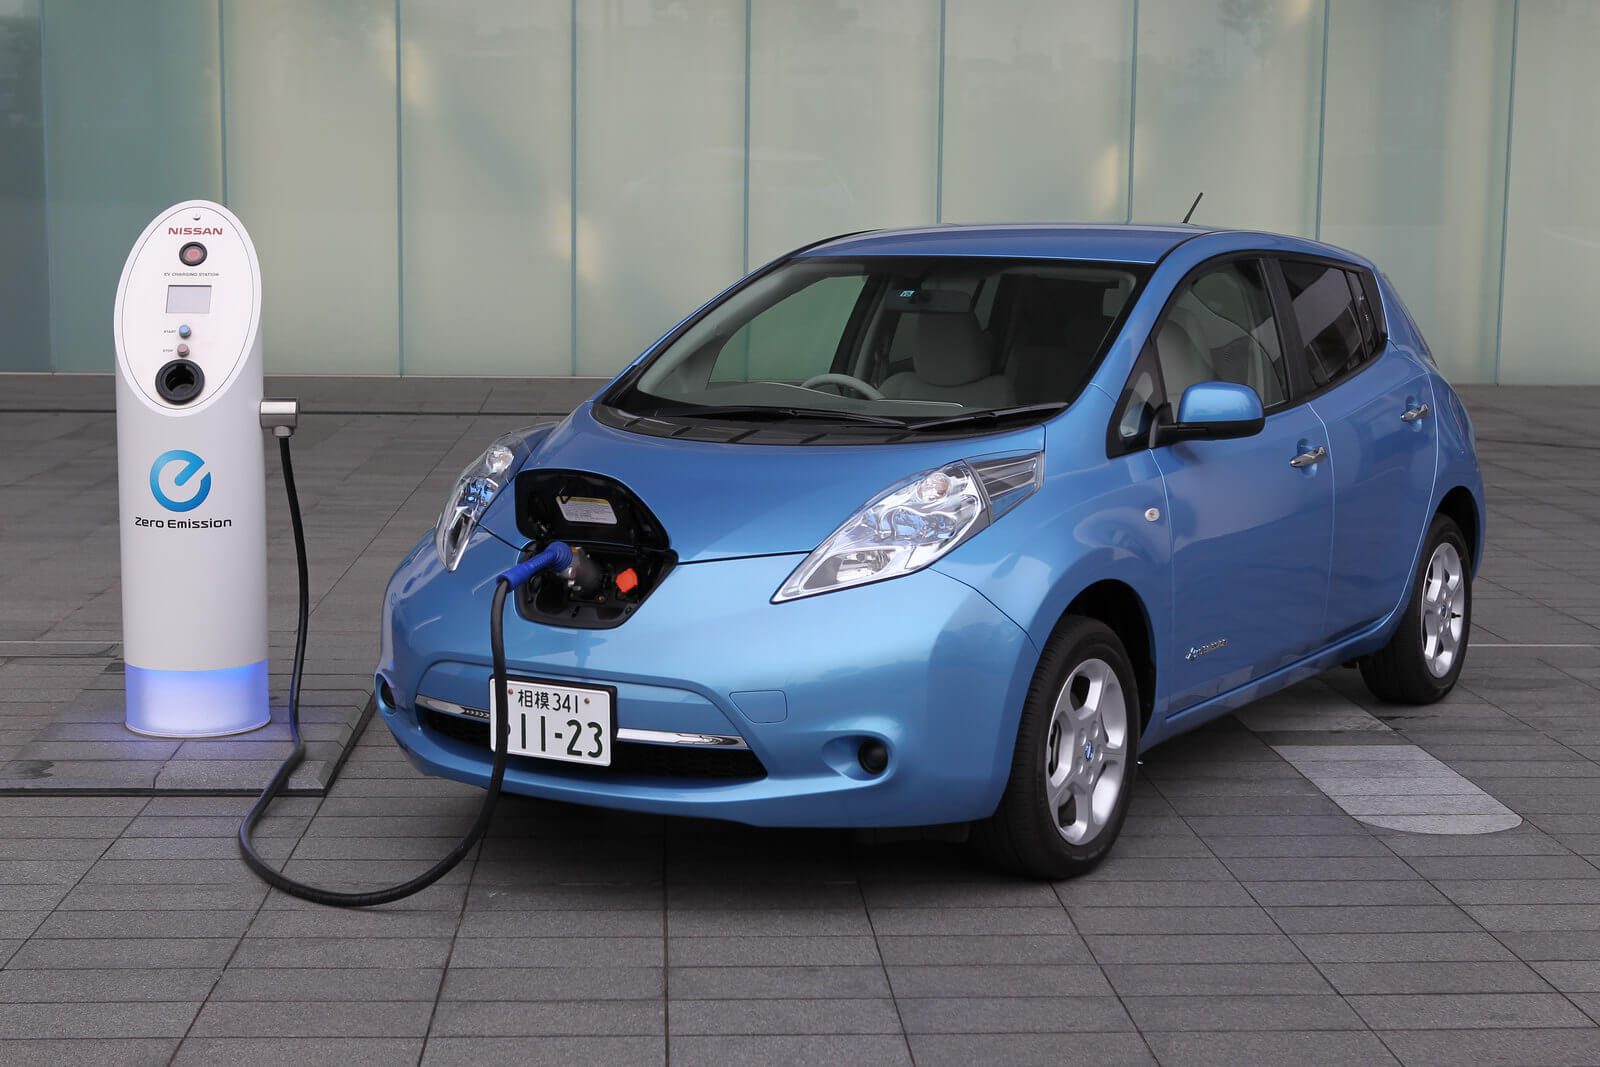 Nissan and Adopt a Charger Announce 15 Free Electric Car Charging Stations